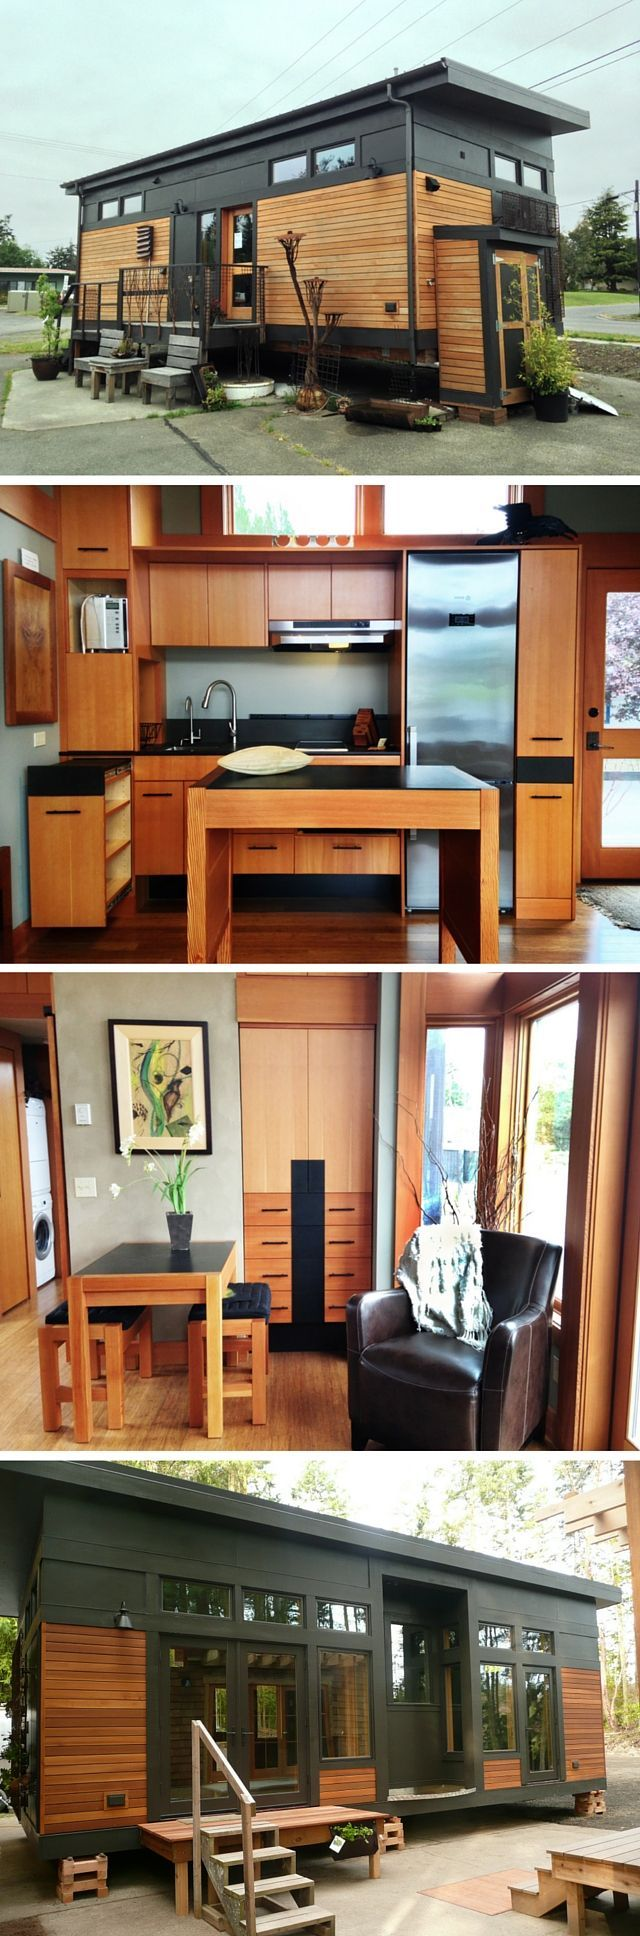 A 450 sq ft tiny house named the Waterhaus